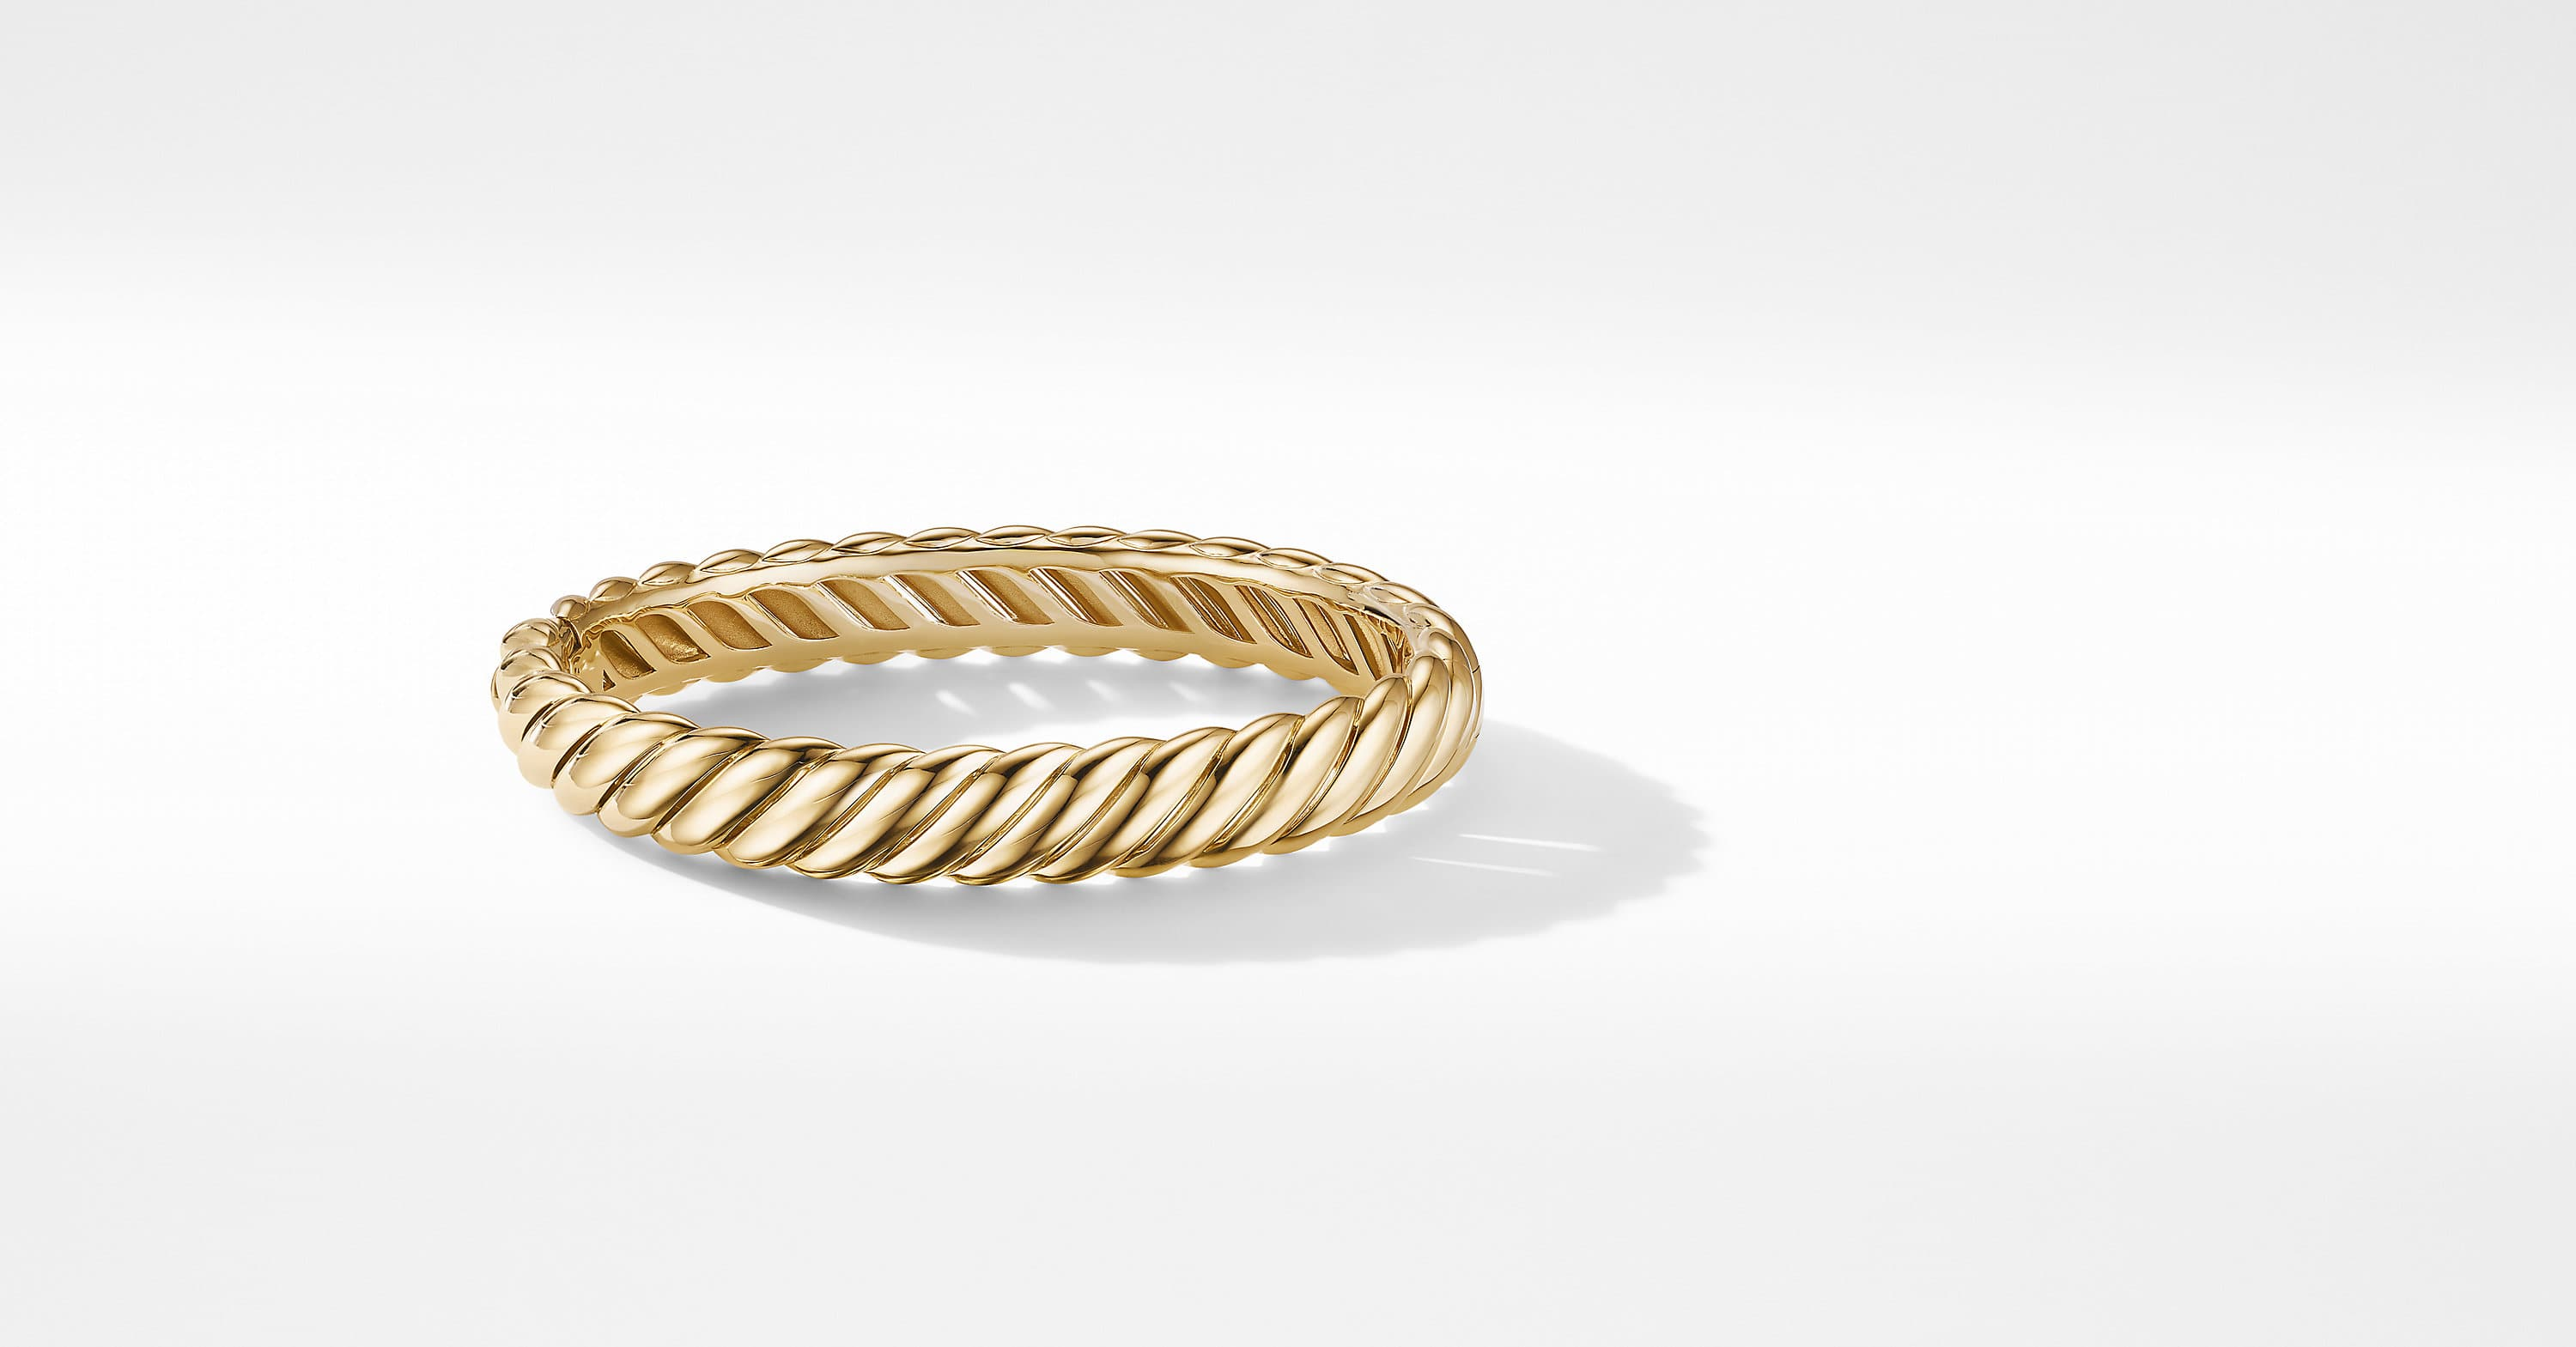 Sculpted Cable Bracelet in 18K Yellow Gold, 10mm